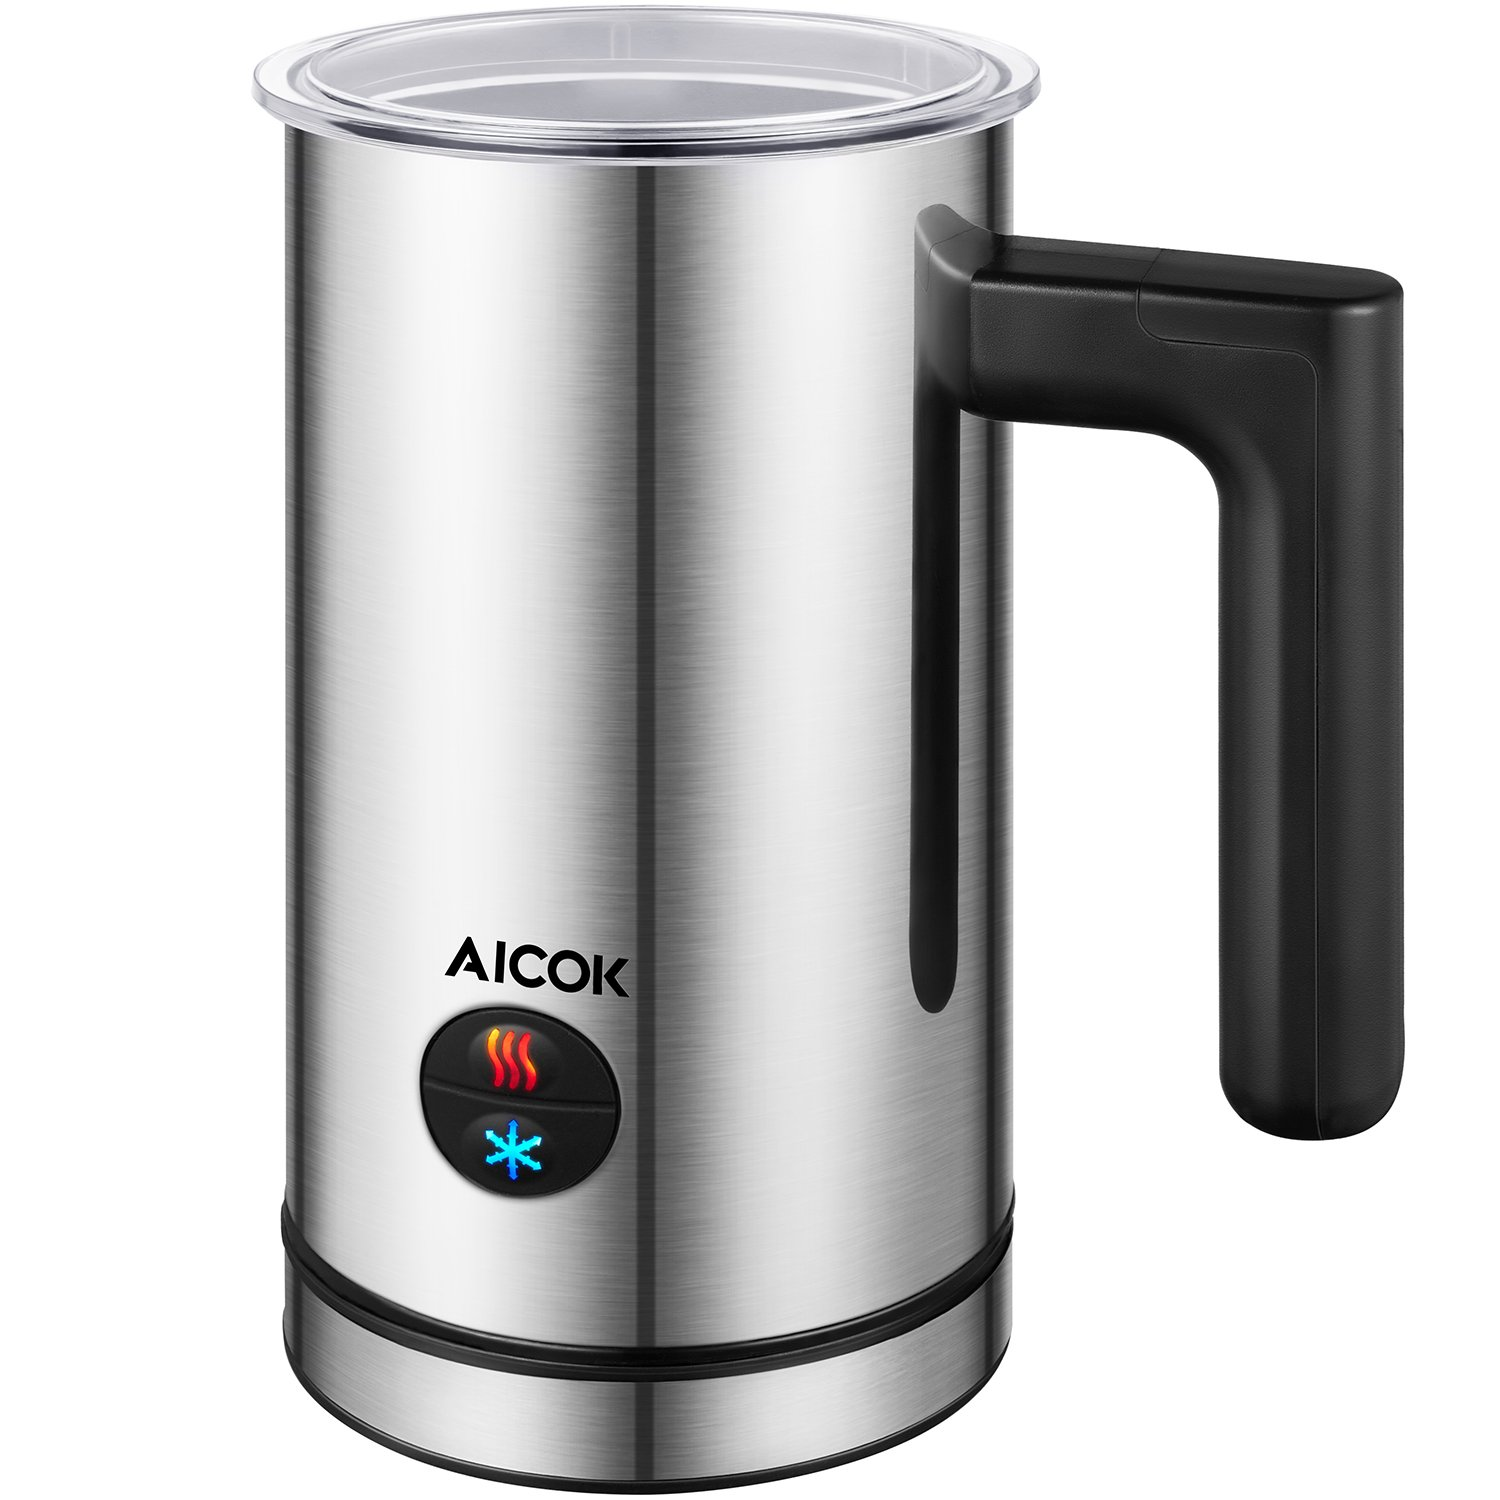 Milk Frother, Aicok Milk Steamer with New Foam Density Feature, Electric Milk Foamer and Warmer for Latte, Cappuccino, Hot Chocolate (FDA Approved) by AICOK